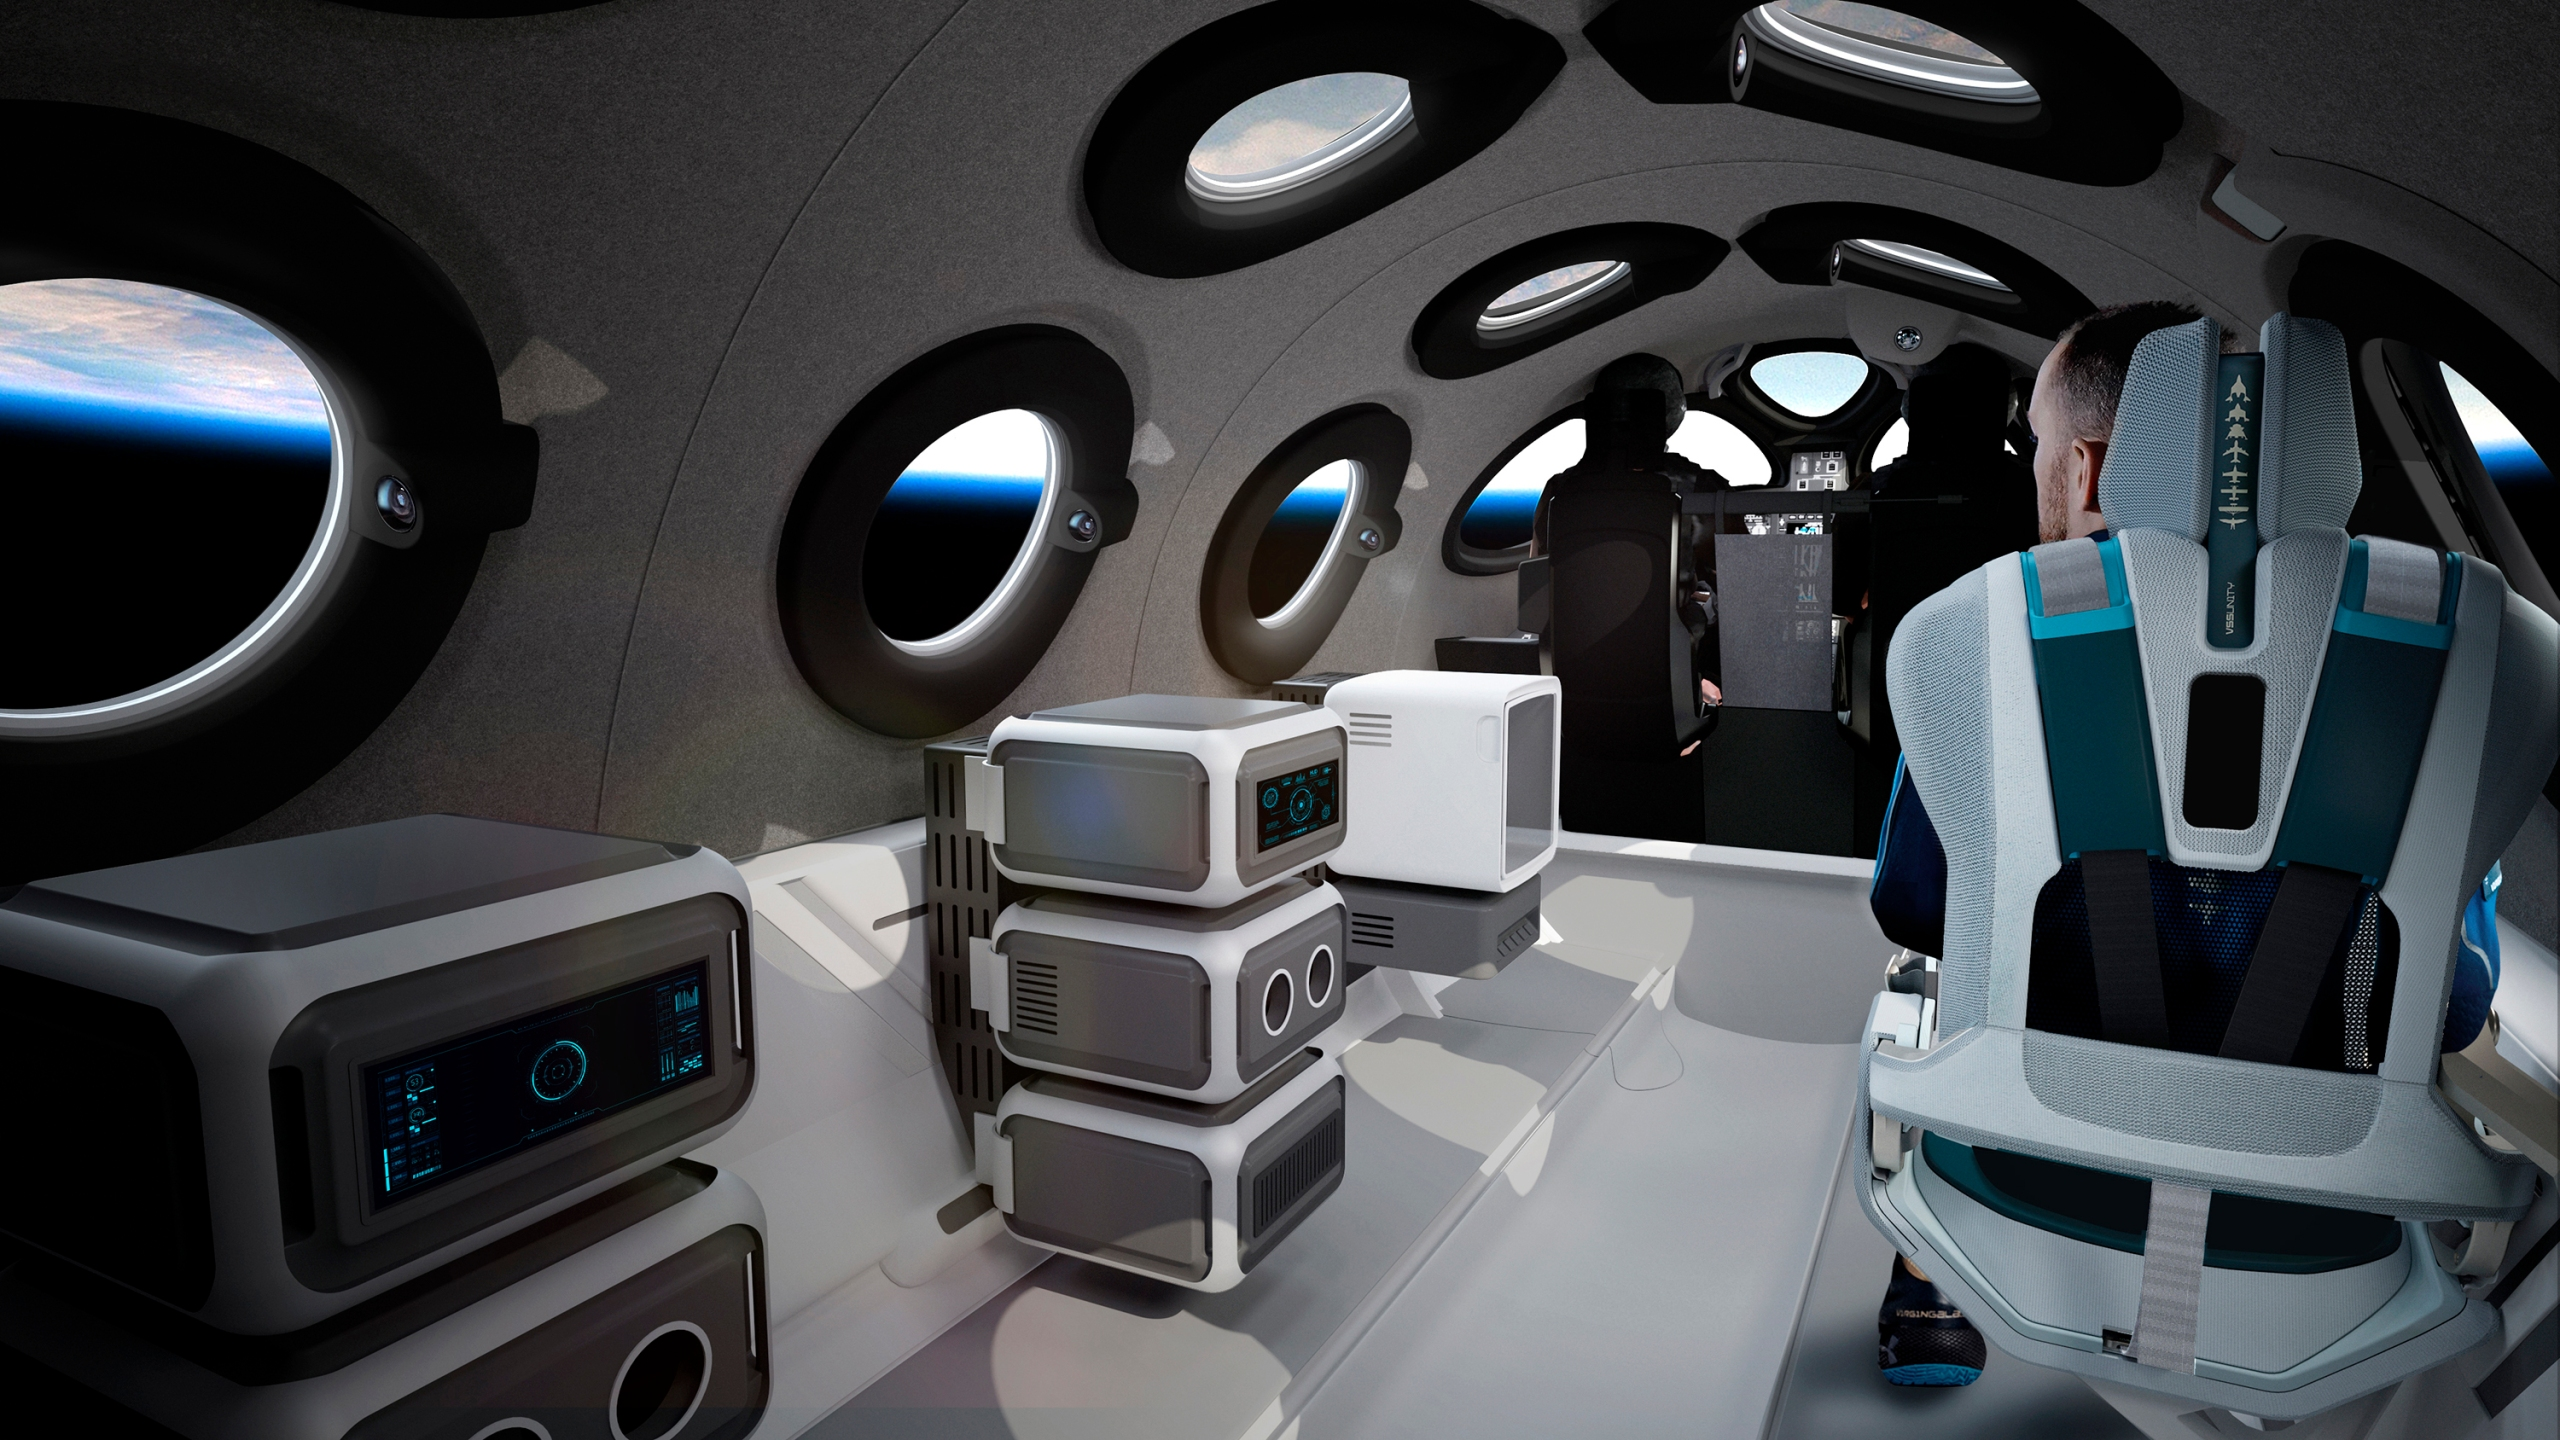 This undated photo released by Virgin Galactic shows the interior of their SpaceShipTwo Cabin during a flight.